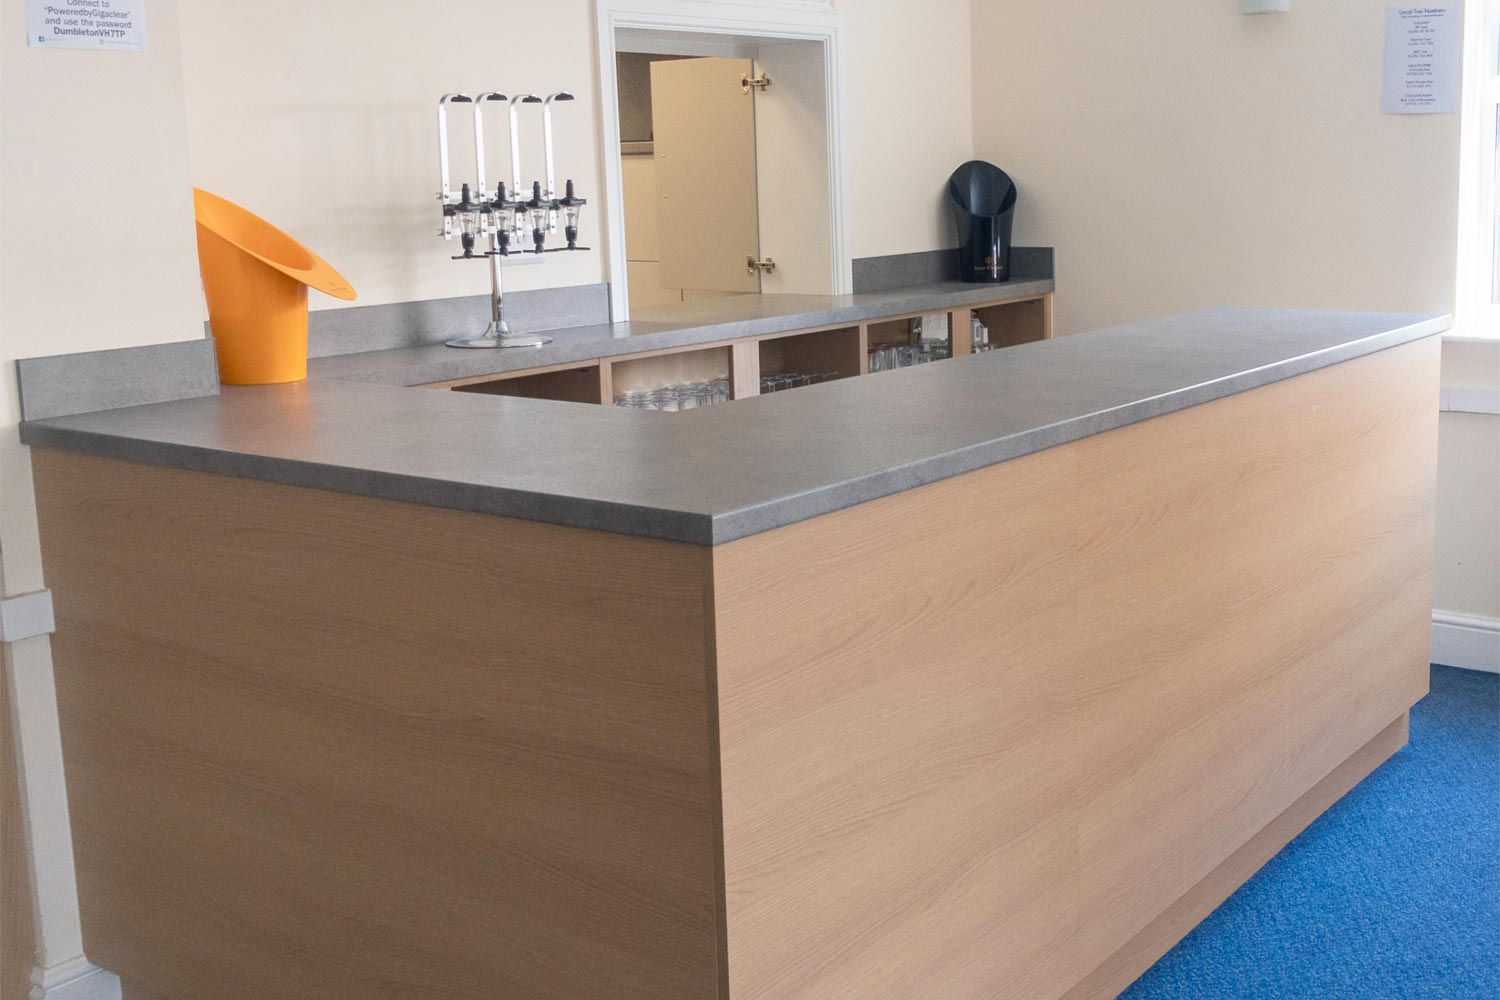 Bar area with optic stand and ice buckets